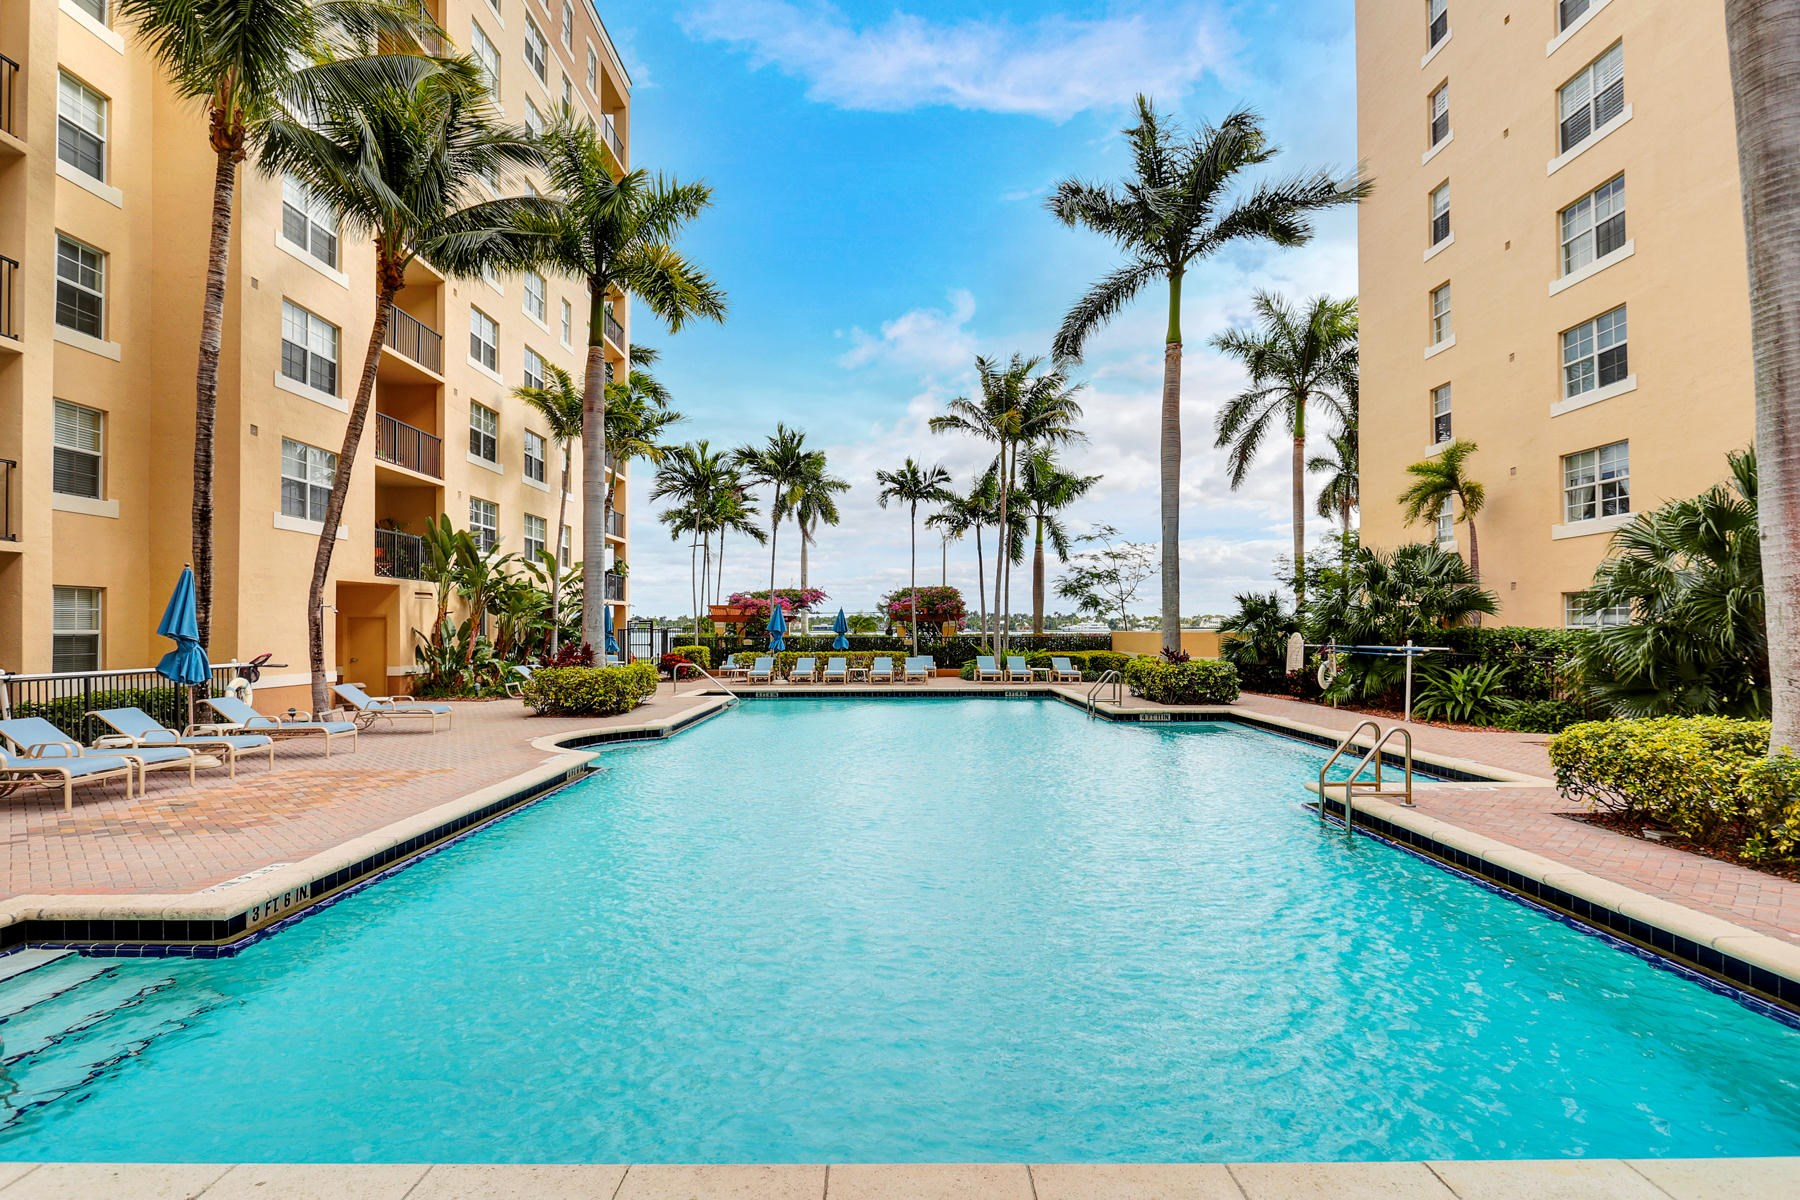 One of West Palm Beach 1 Bedroom Homes for Sale at 1803 N Flagler Drive Unit 115